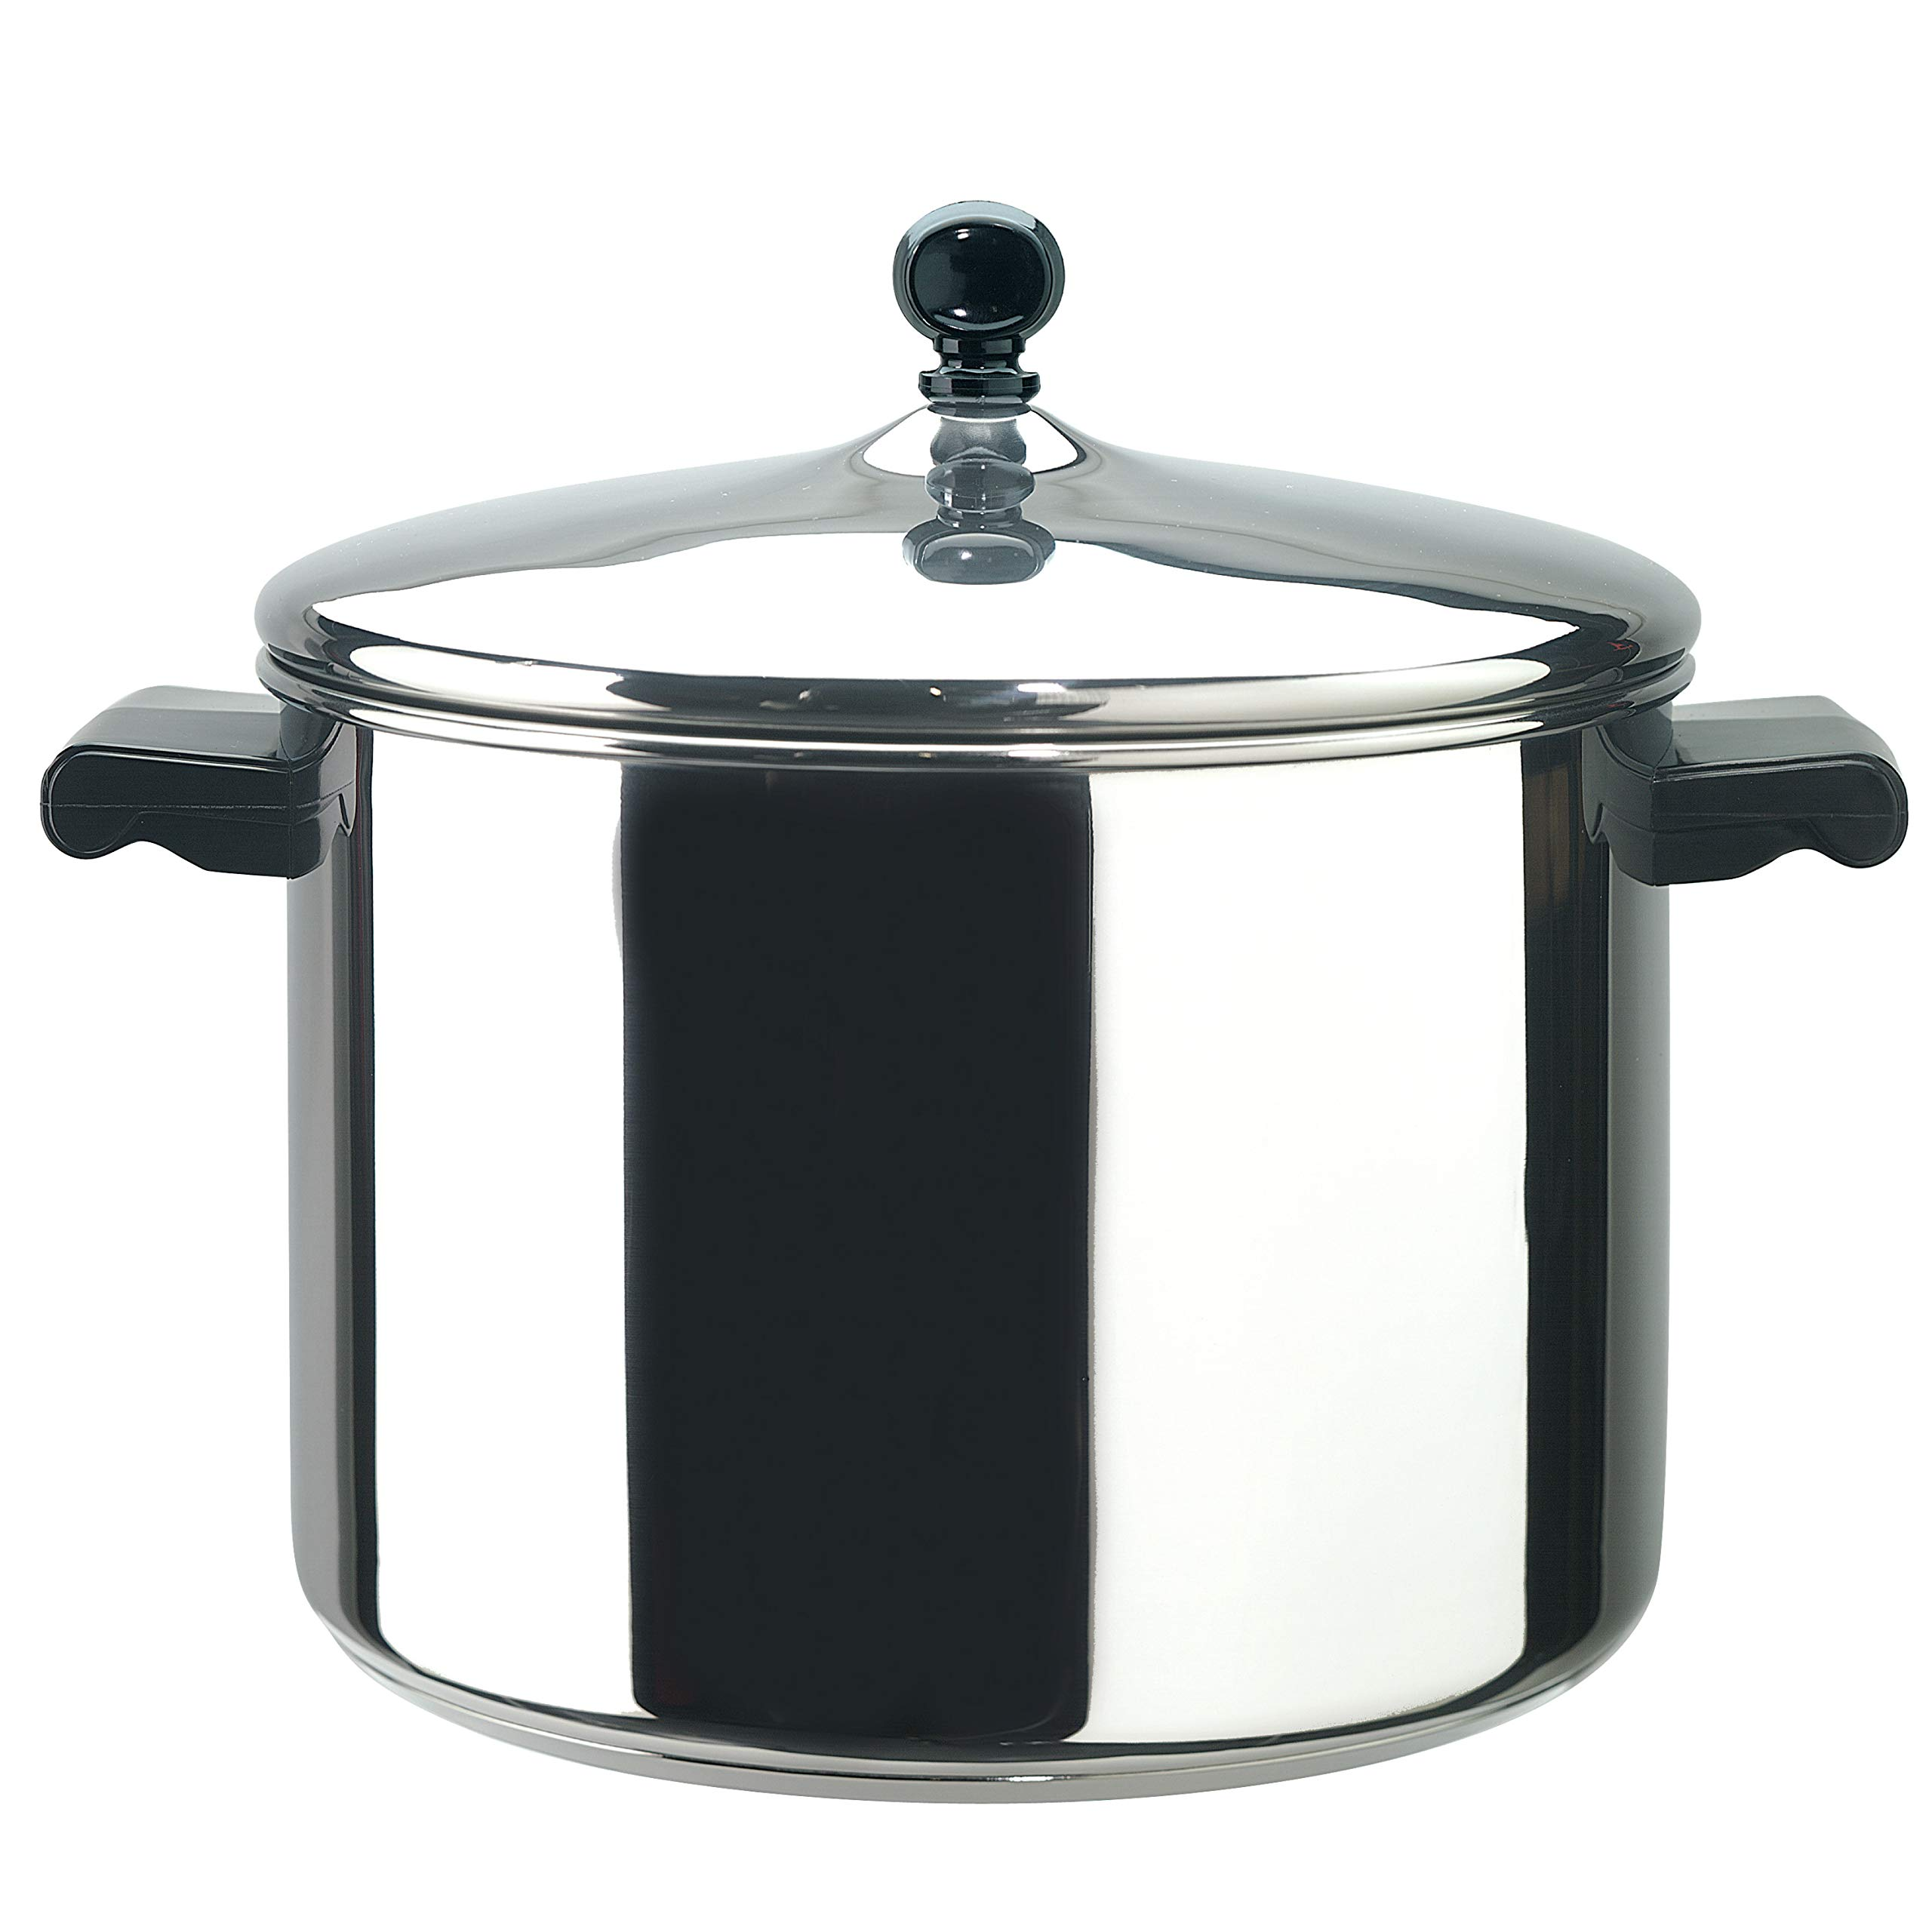 Farberware 50006 Classic Stainless Steel 8-Quart Stockpot with Lid, Stainless Steel Pot with Lid, Silver